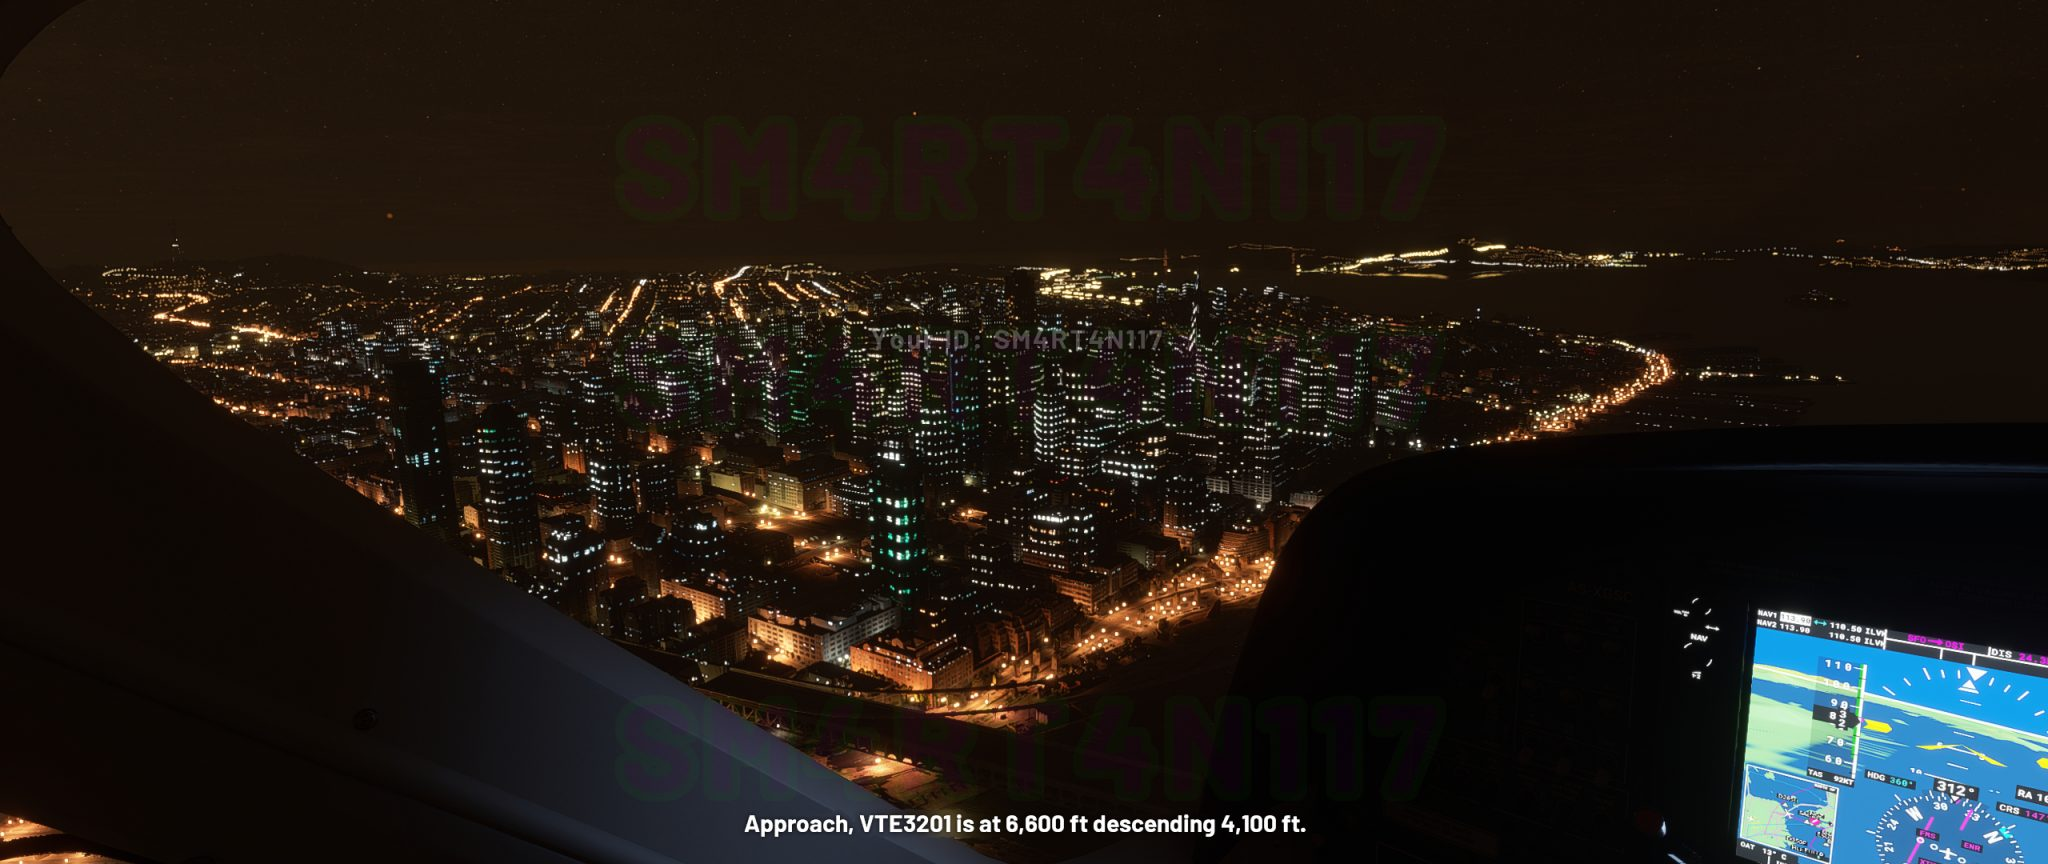 SIMULATOR - Microsoft Flight Simulator. - Página 9 Nightlights-2048x864